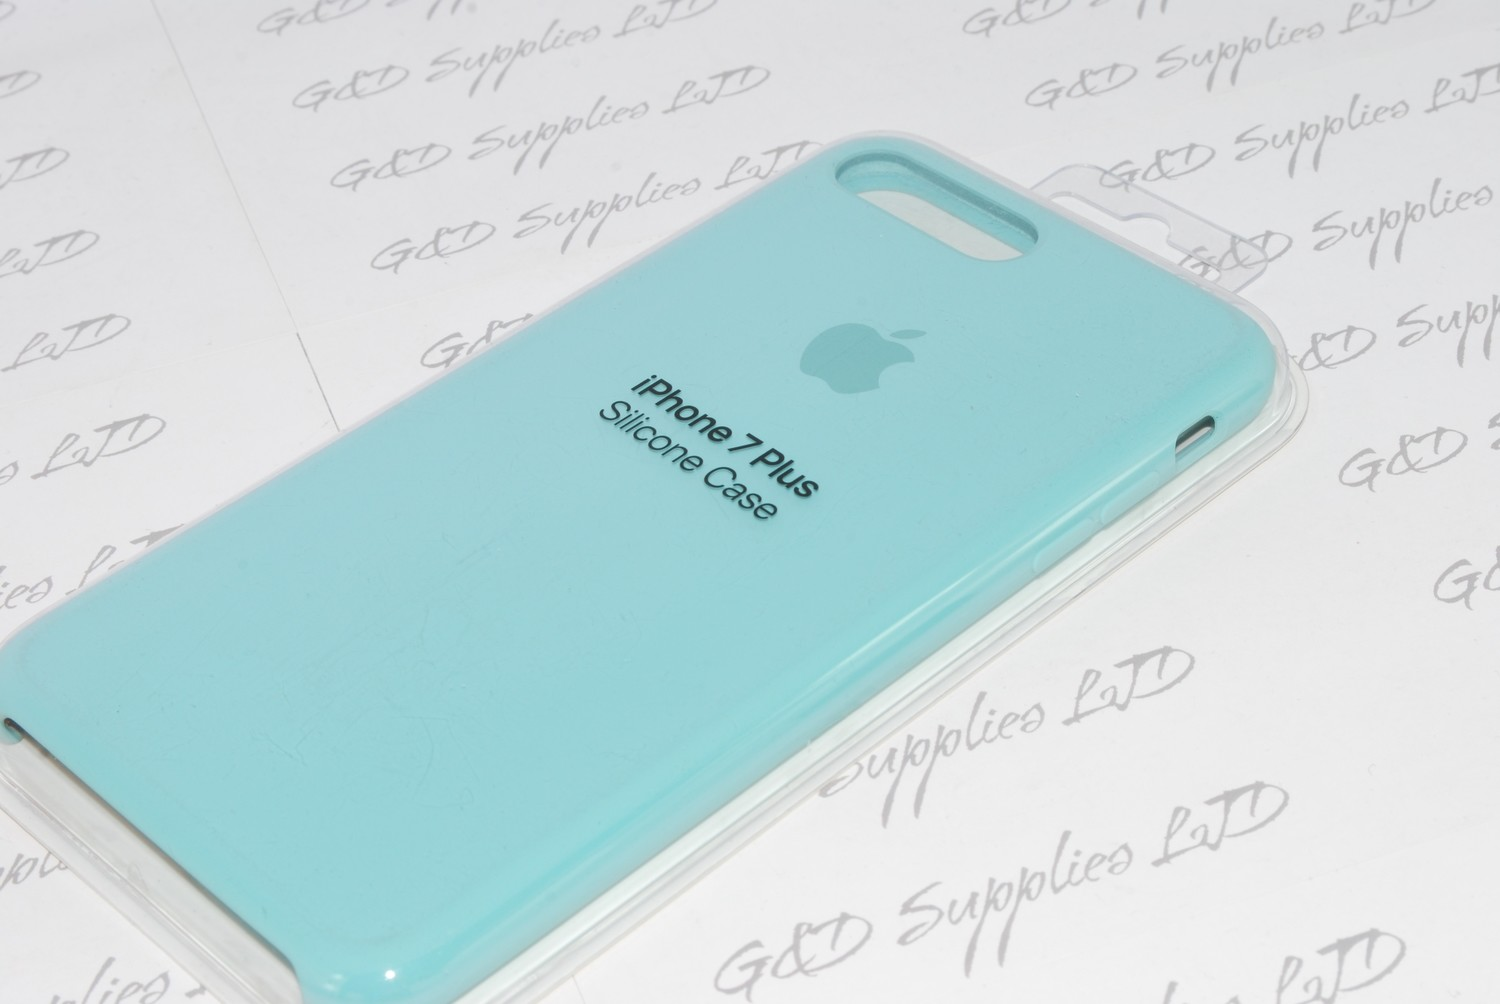 SEA BLUE GENIUNE ORIGINAL OFFICIAL Apple Silicone Case iPhone 7 PLUS 5.5""